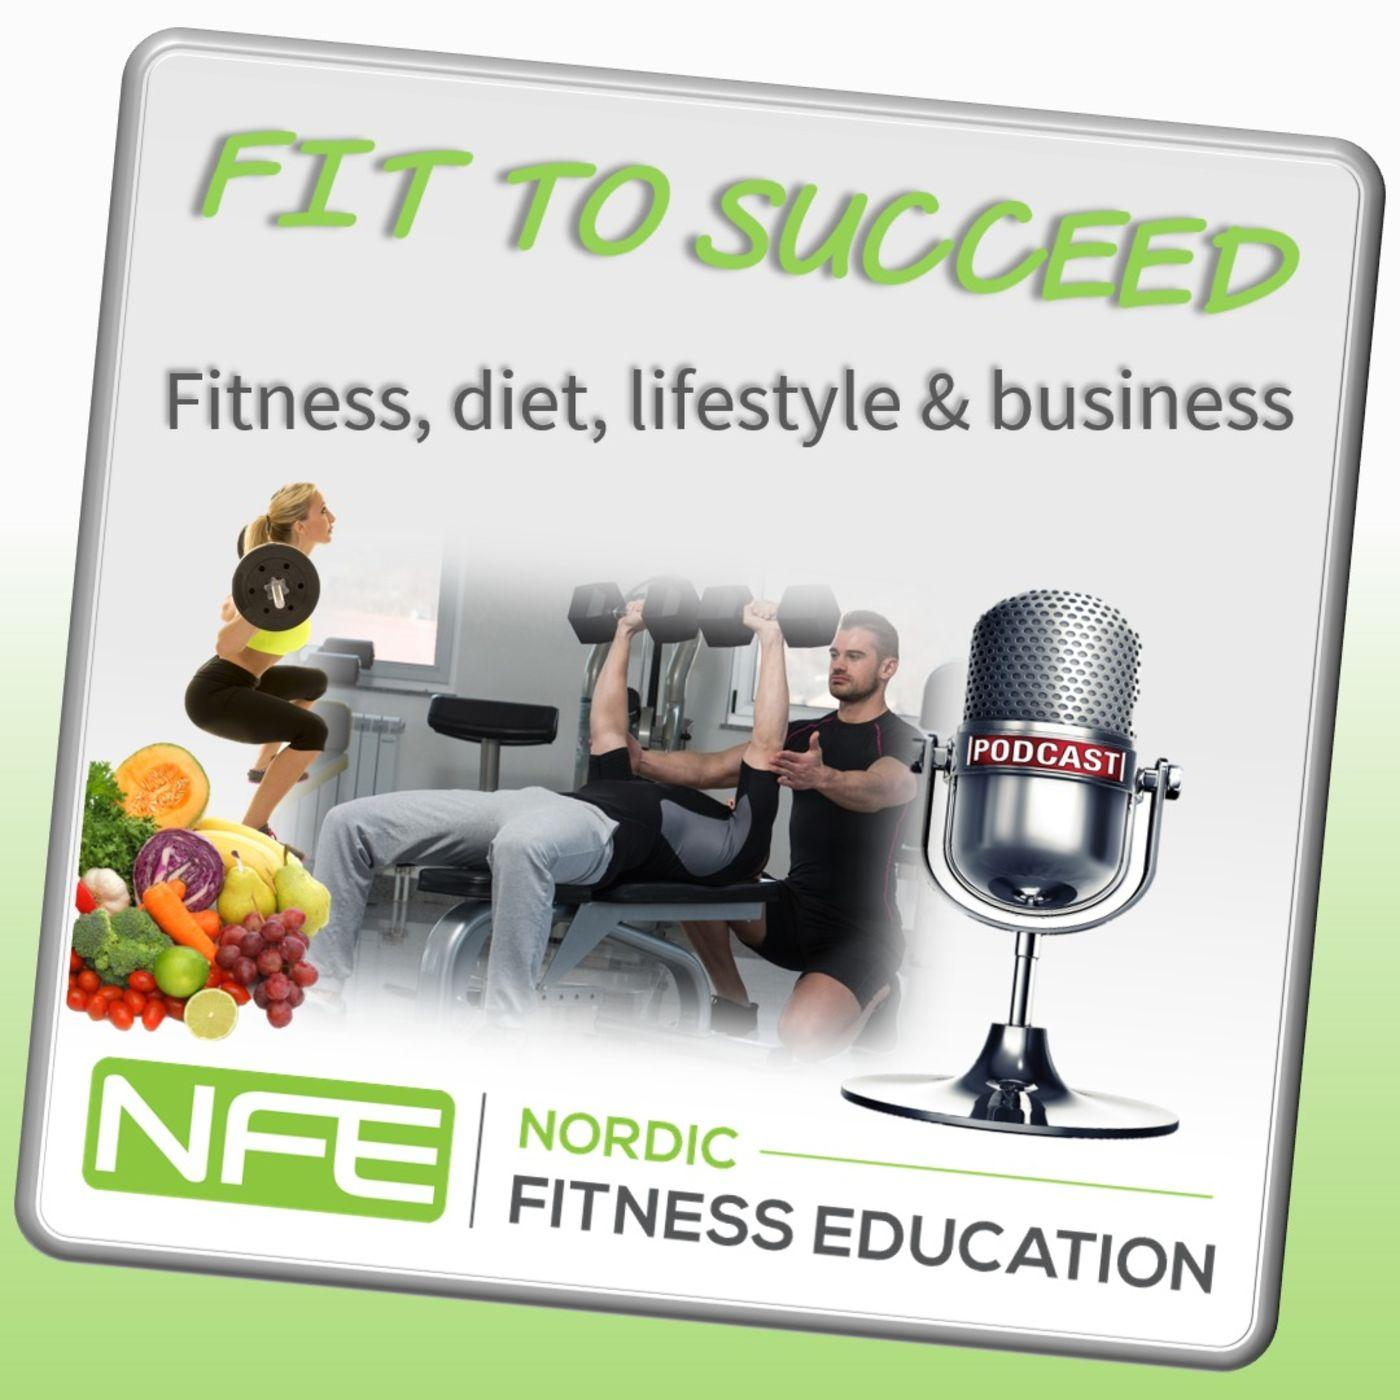 Fit to Succeed (podcast) - Nordic Fitness Education | Listen